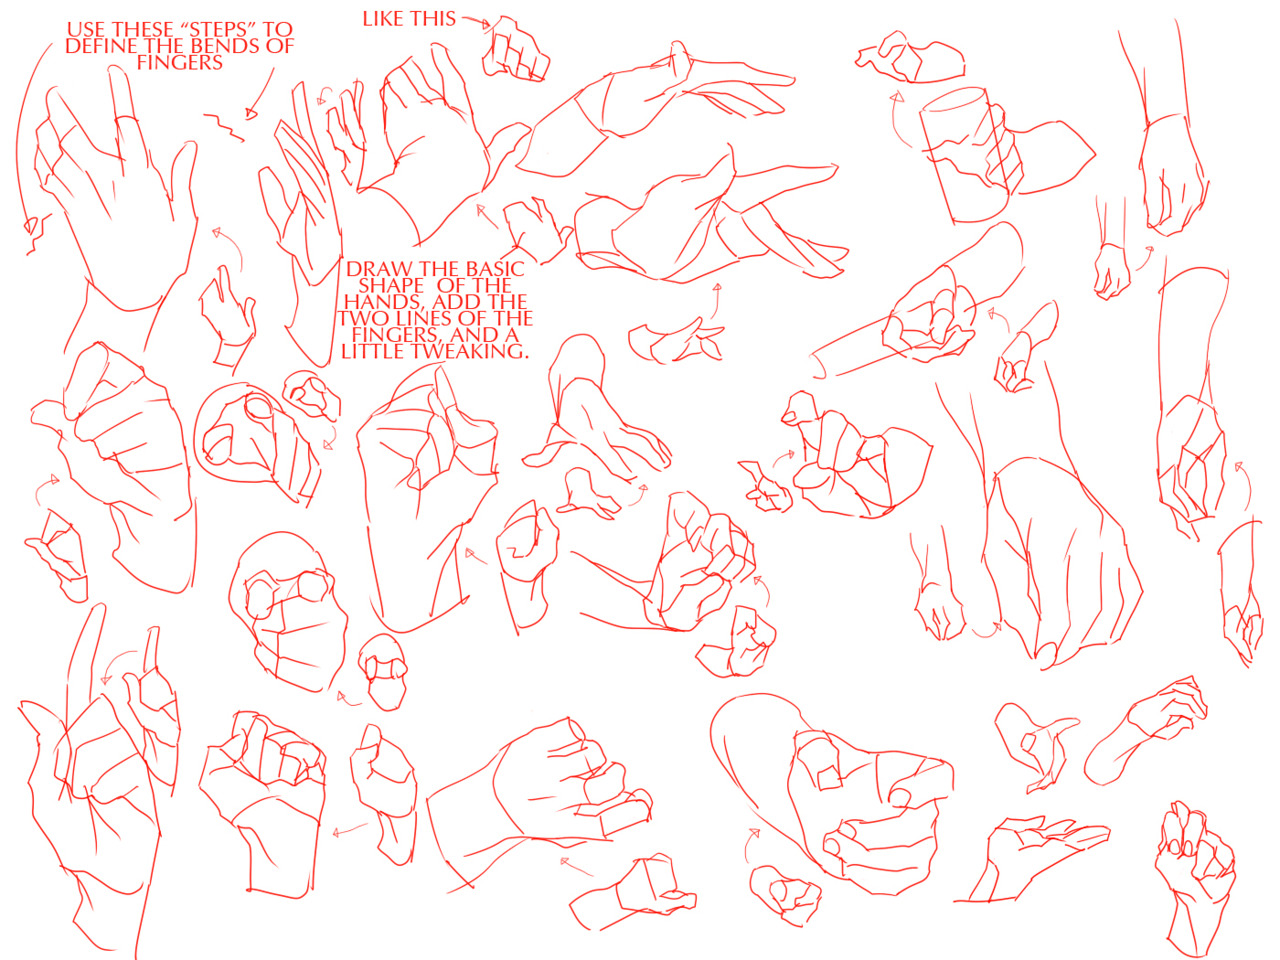 It's just an image of Sassy Hand Drawing Poses